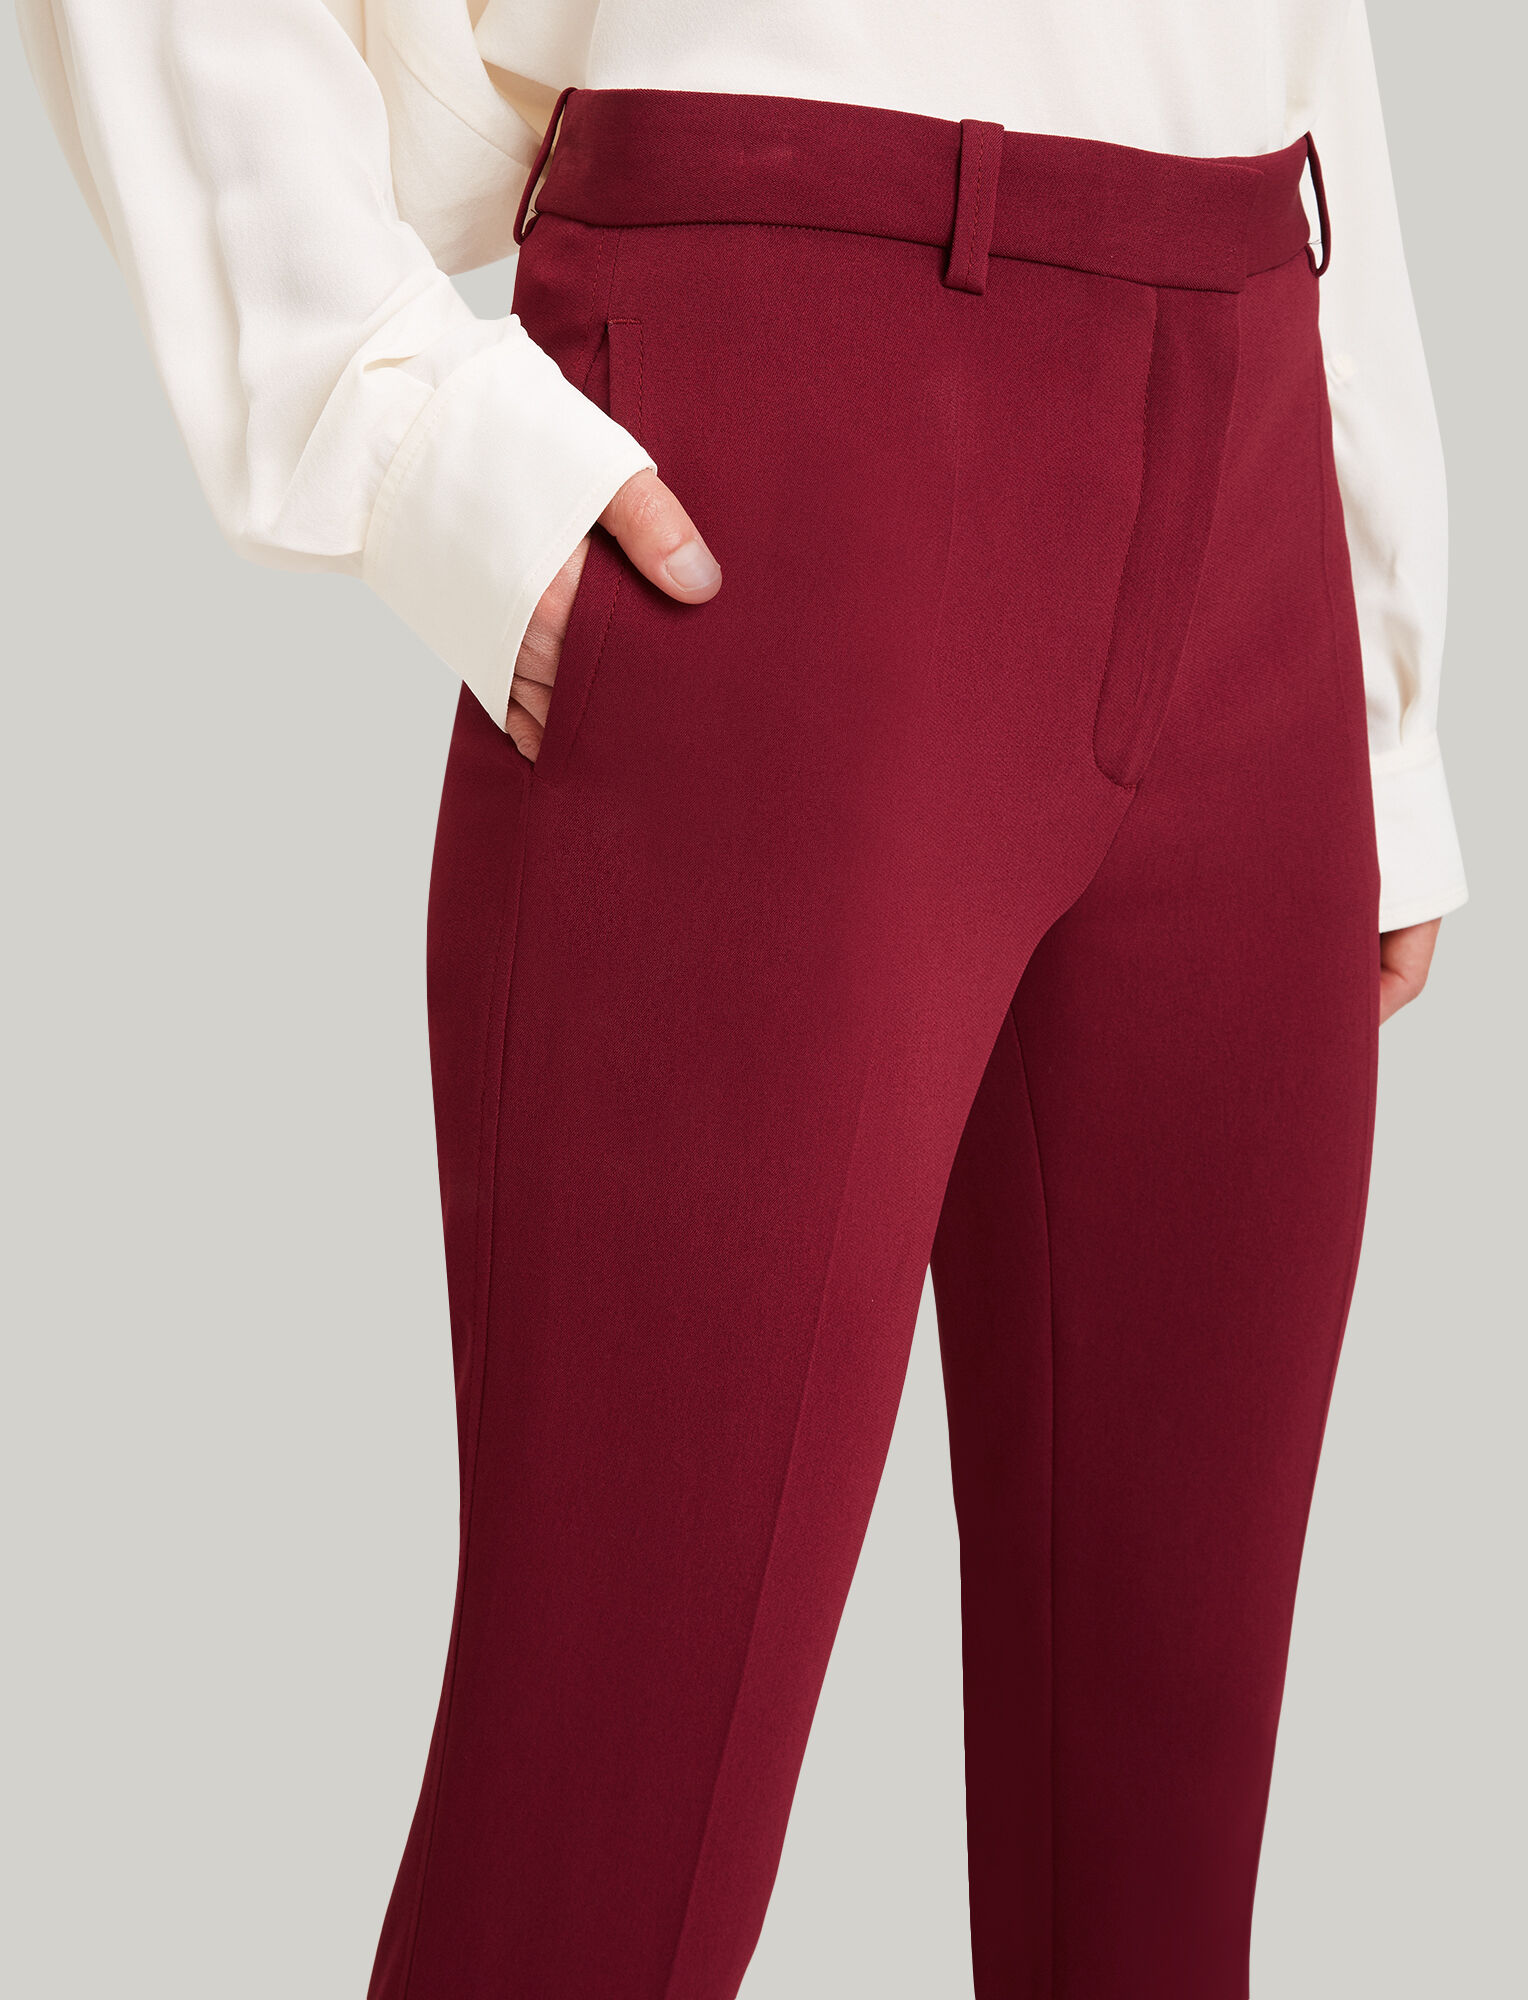 Joseph, Zoom Viscose Cady Trousers, in RUBY